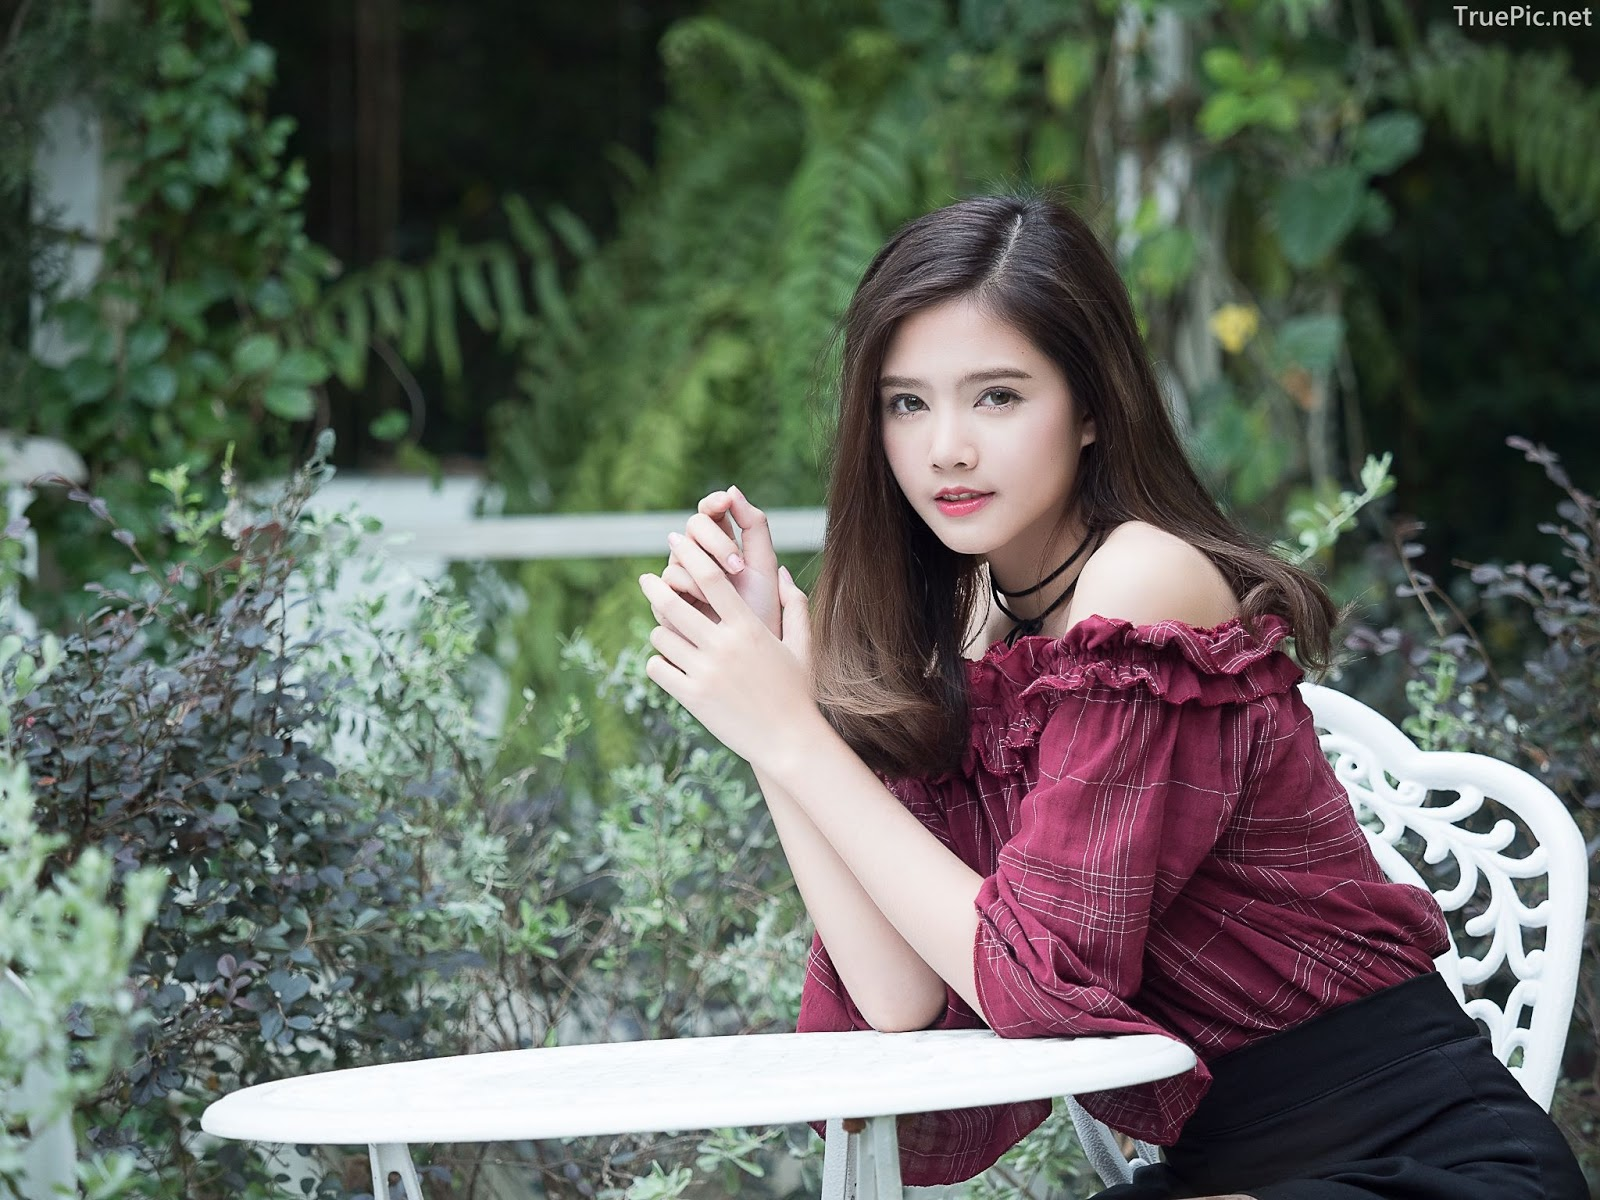 Thailand pretty girl Aintoaon Nantawong – The most beautiful flower in the garden - Picture 6